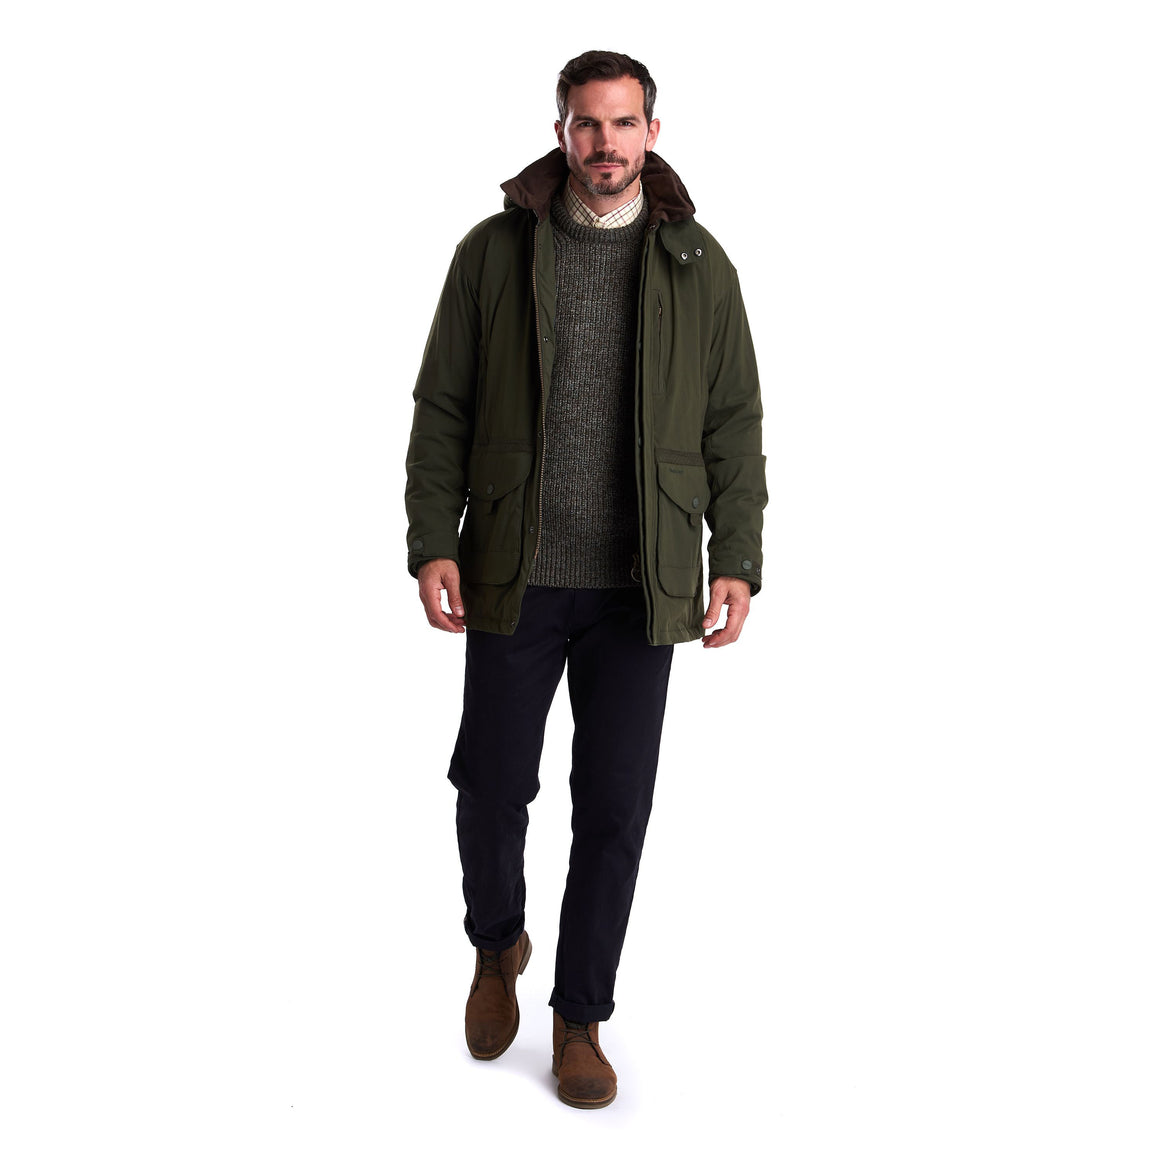 Brandsdale Jacket for Men in Forest Green